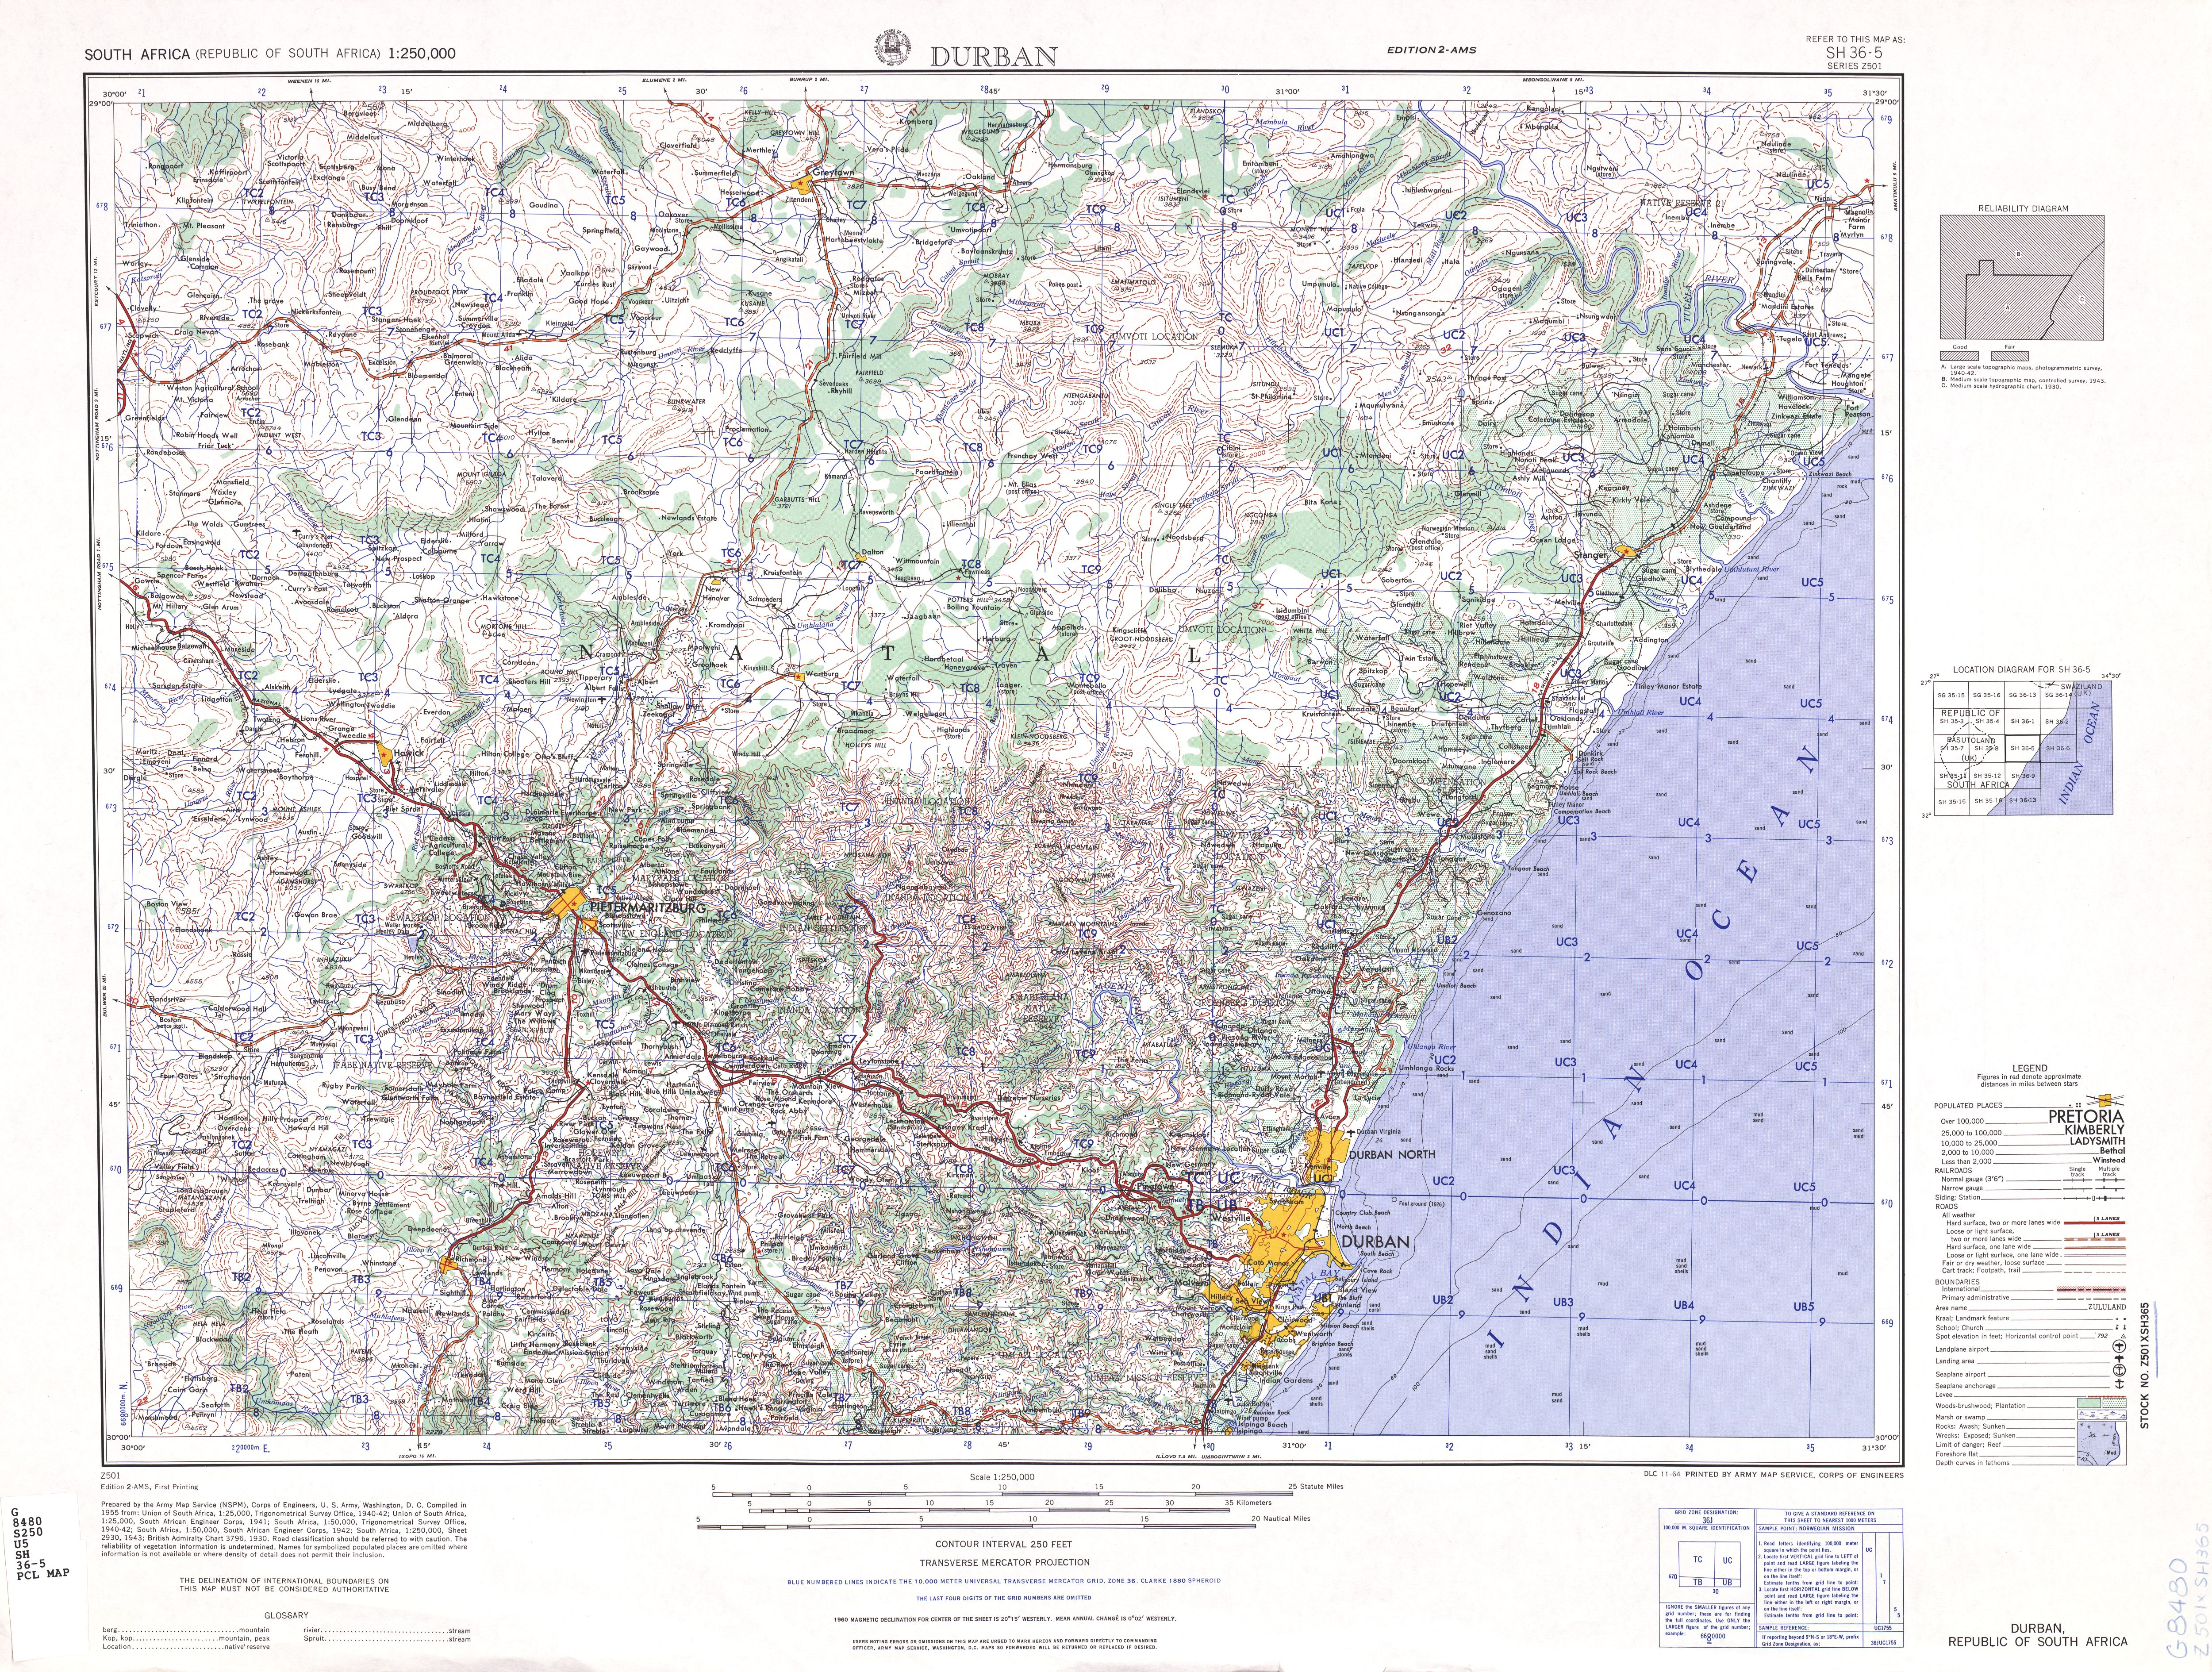 topographic map of south africa South Africa Ams Topographic Maps Perry Castaneda Map Collection